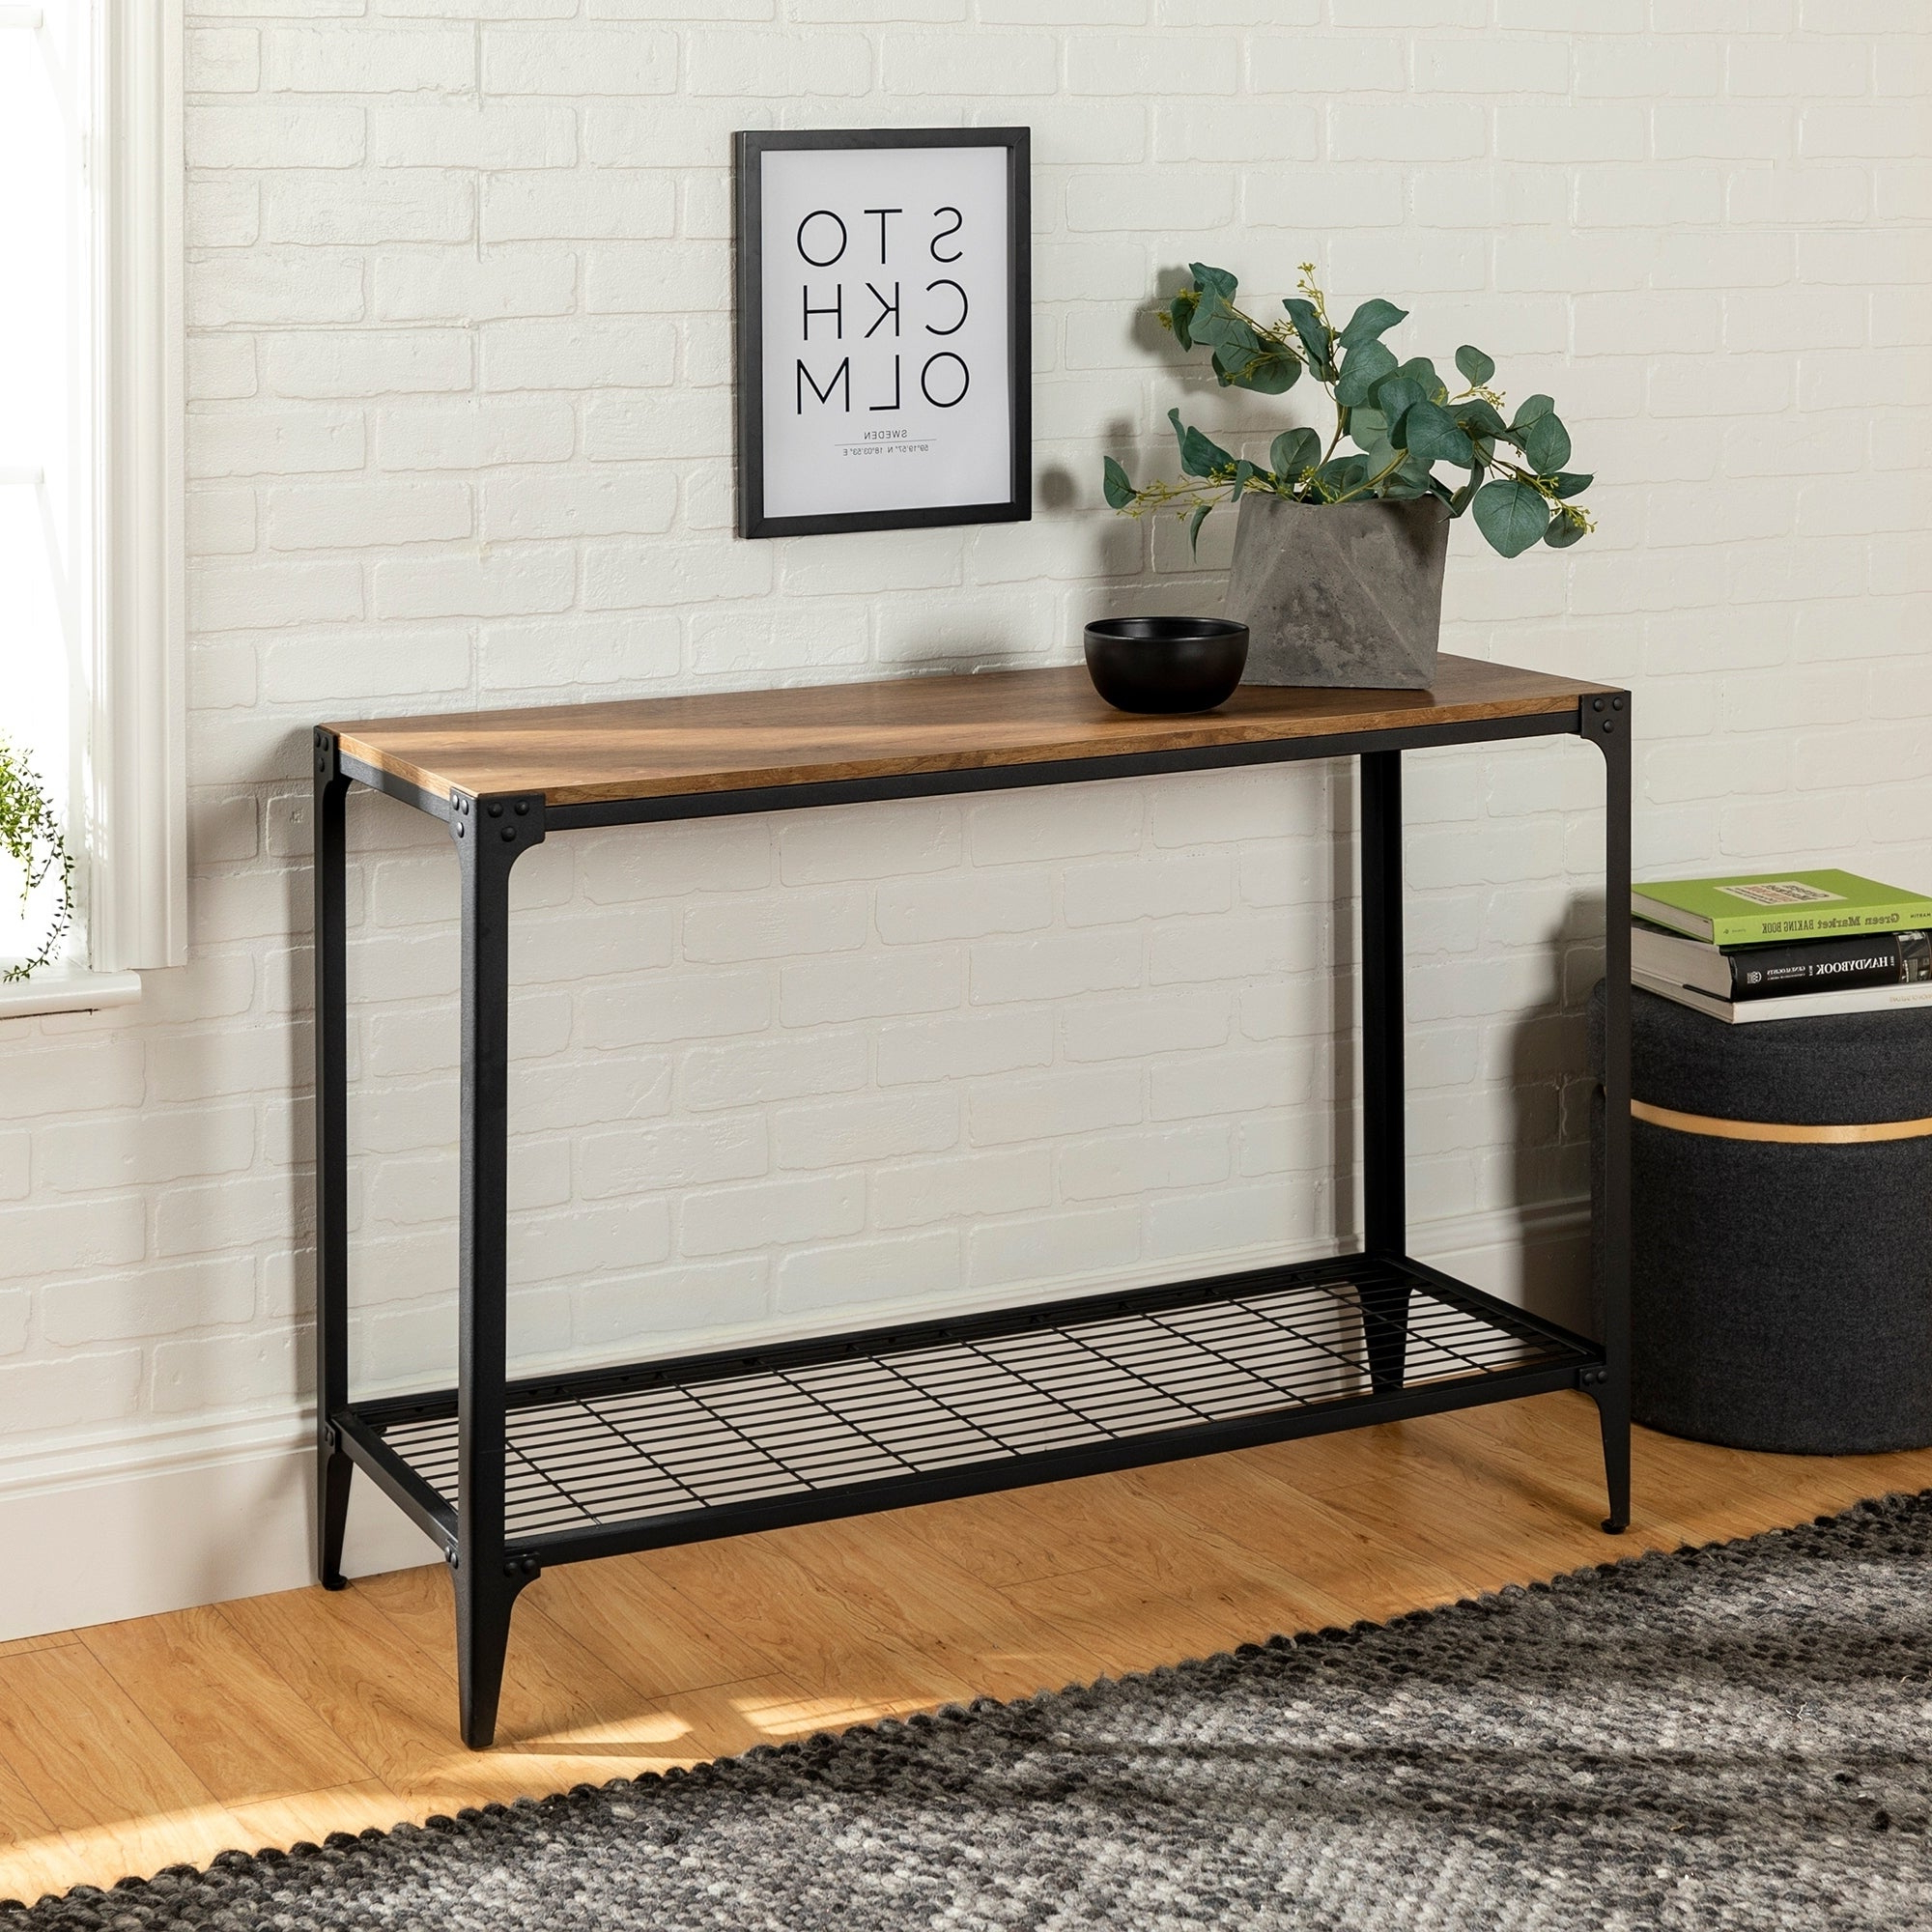 Carbon Loft Witten Angle Iron And Barnwood Entry Table – 44 X 16 X 30H Throughout Widely Used Carbon Loft Witten Angle Iron And Driftwood Coffee Tables (View 3 of 20)